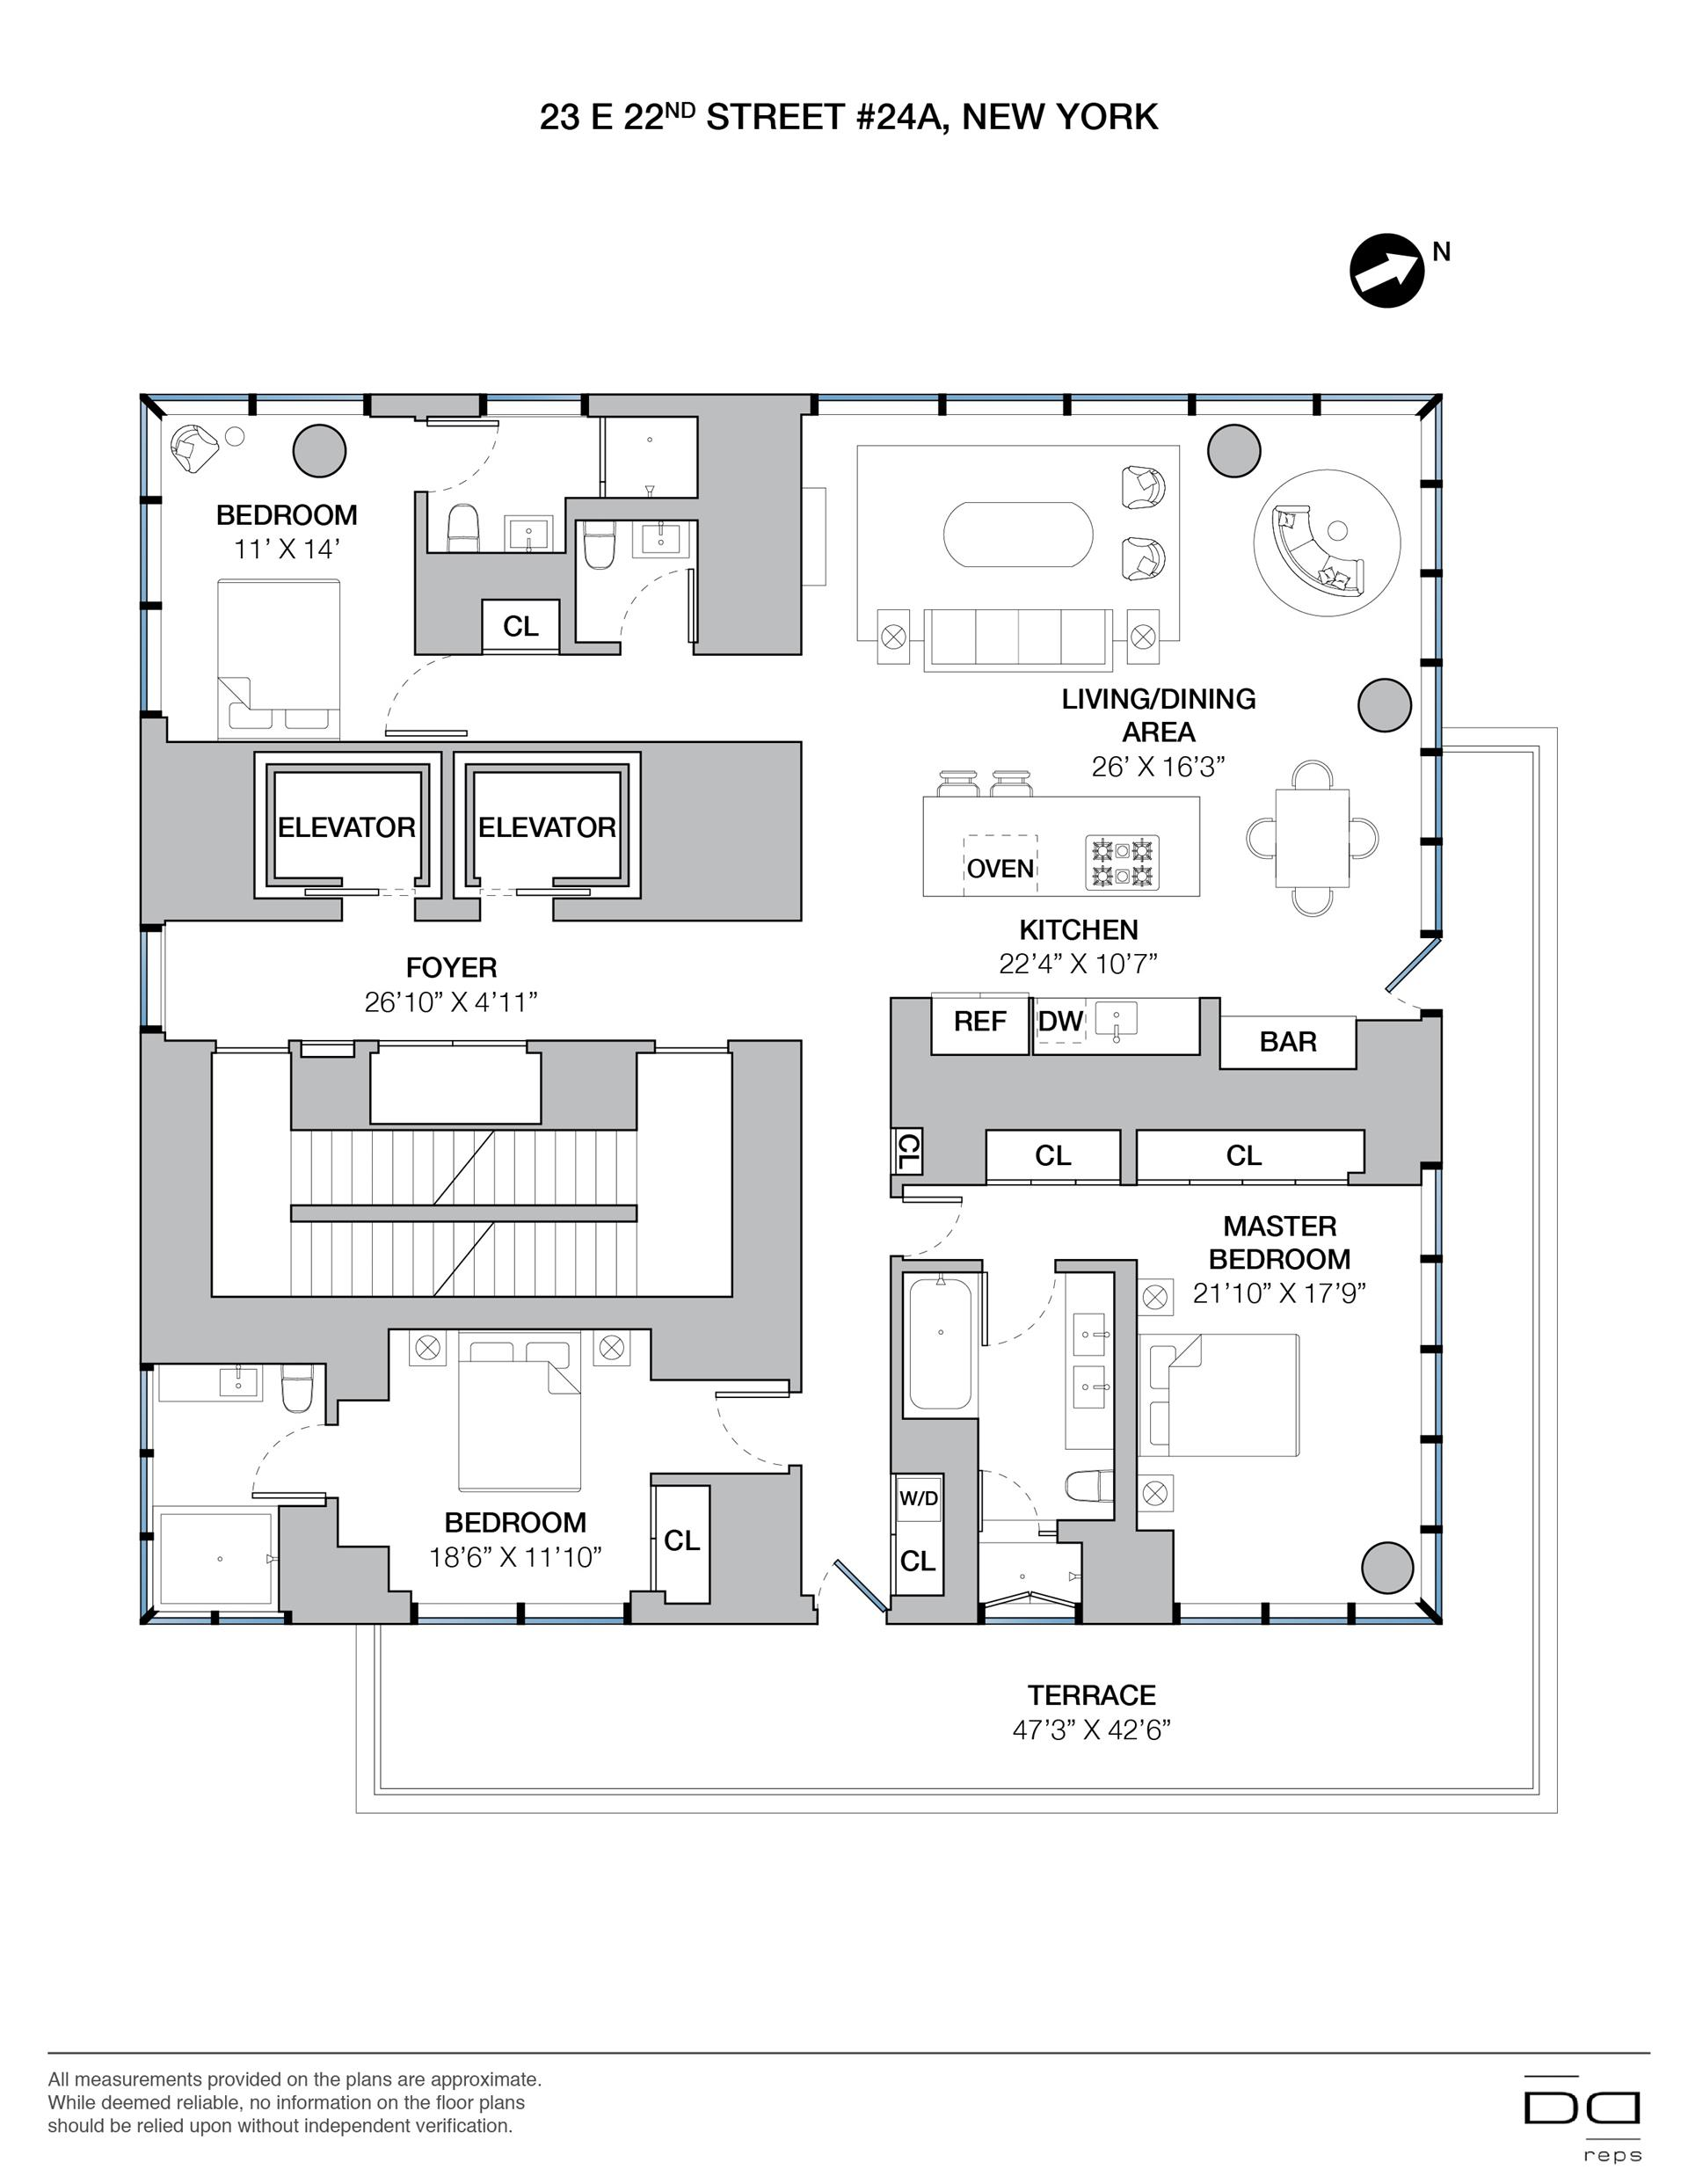 Floor plan of One Madison, 23 East 22nd St, 24A - Flatiron District, New York